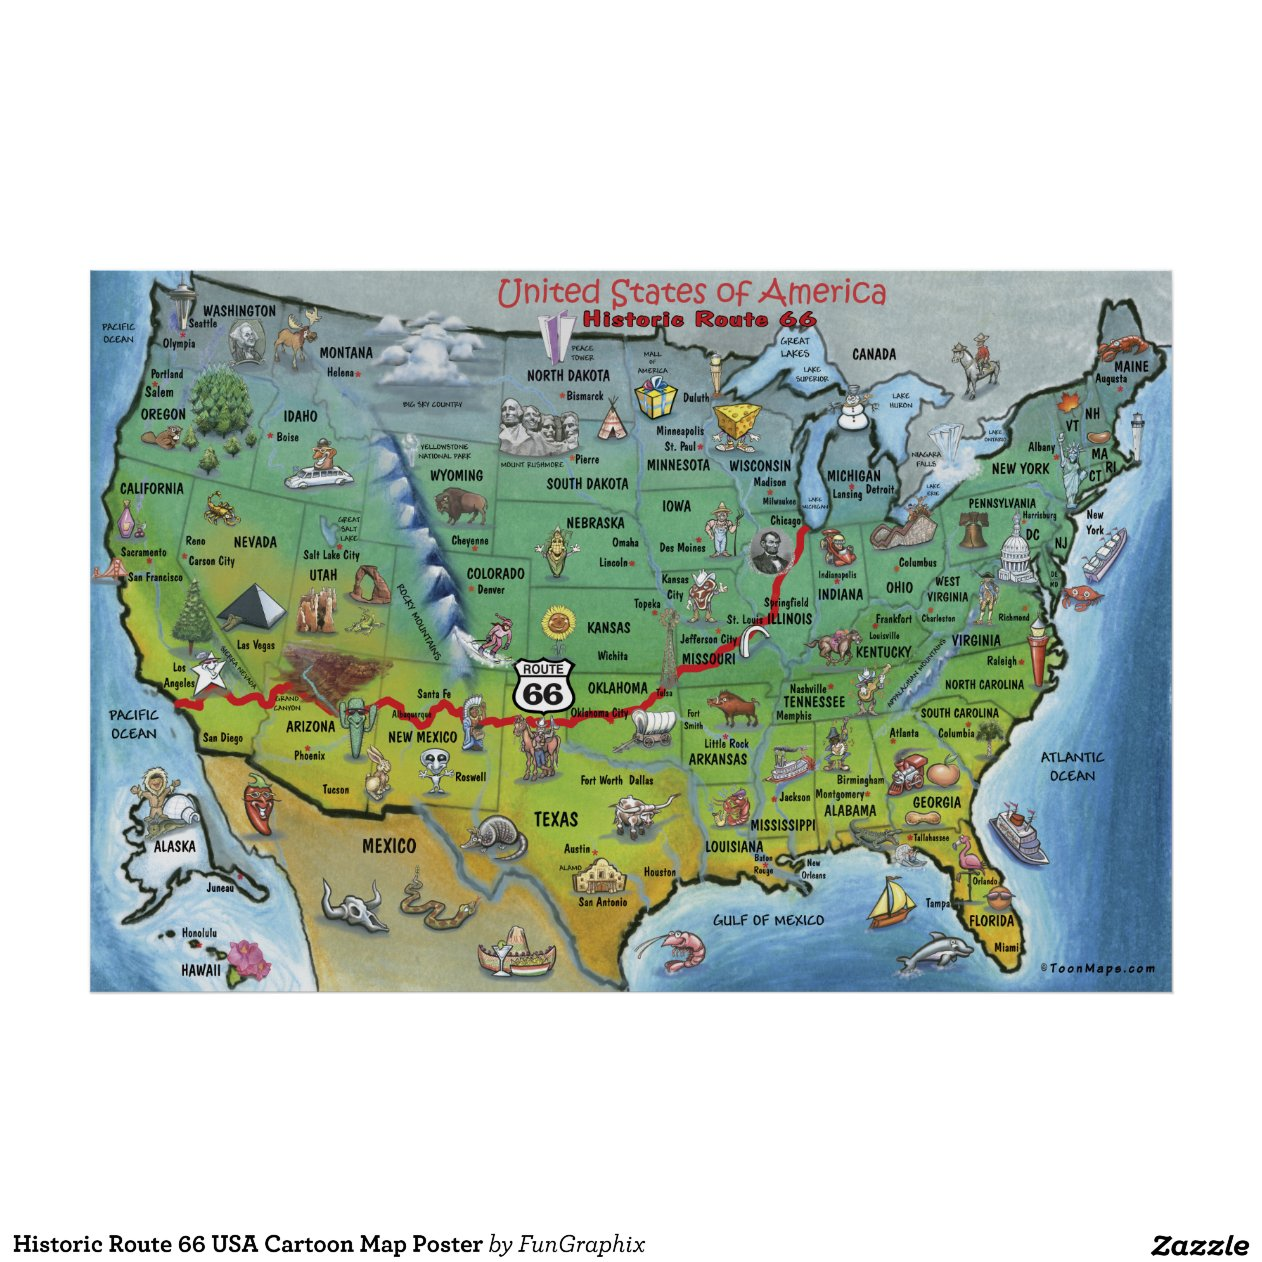 Historic Route 66 California Map.Historic Route 66 Usa Cartoon Map Poster Zazzle Cartoon Map Of Usa